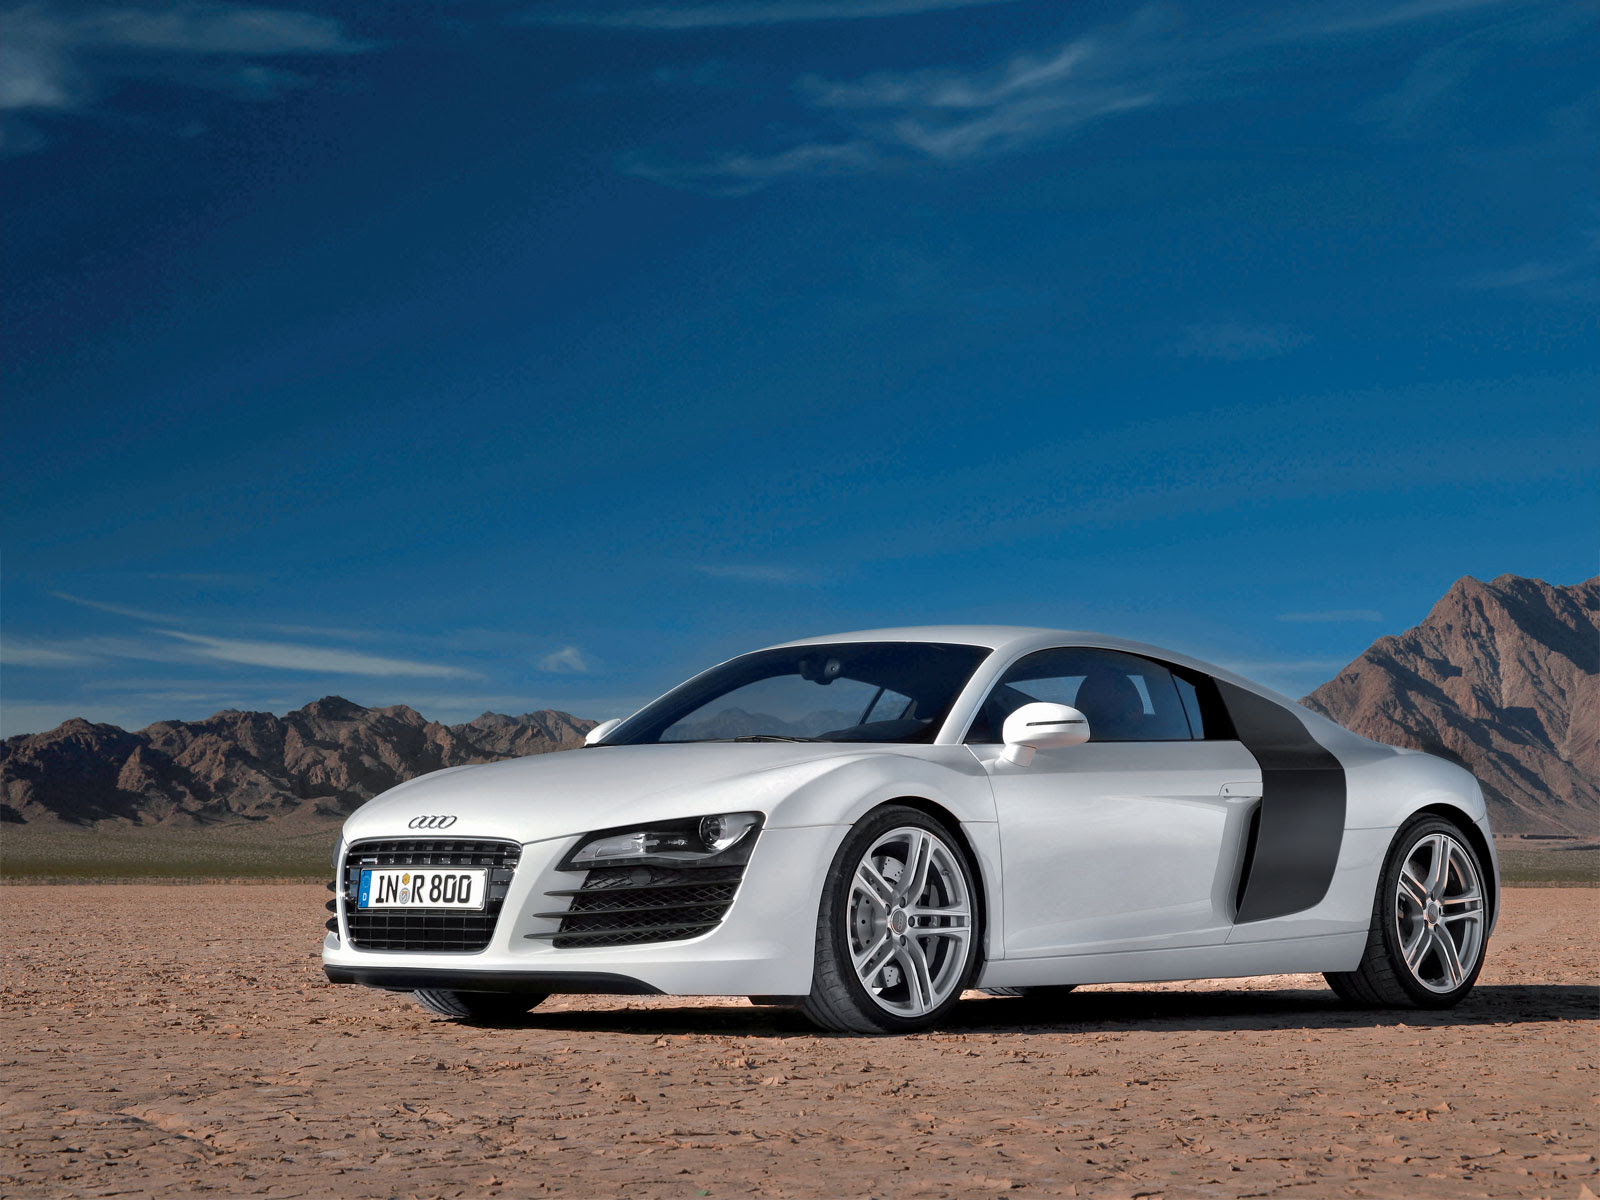 Audi Cars Wallpapers Hd